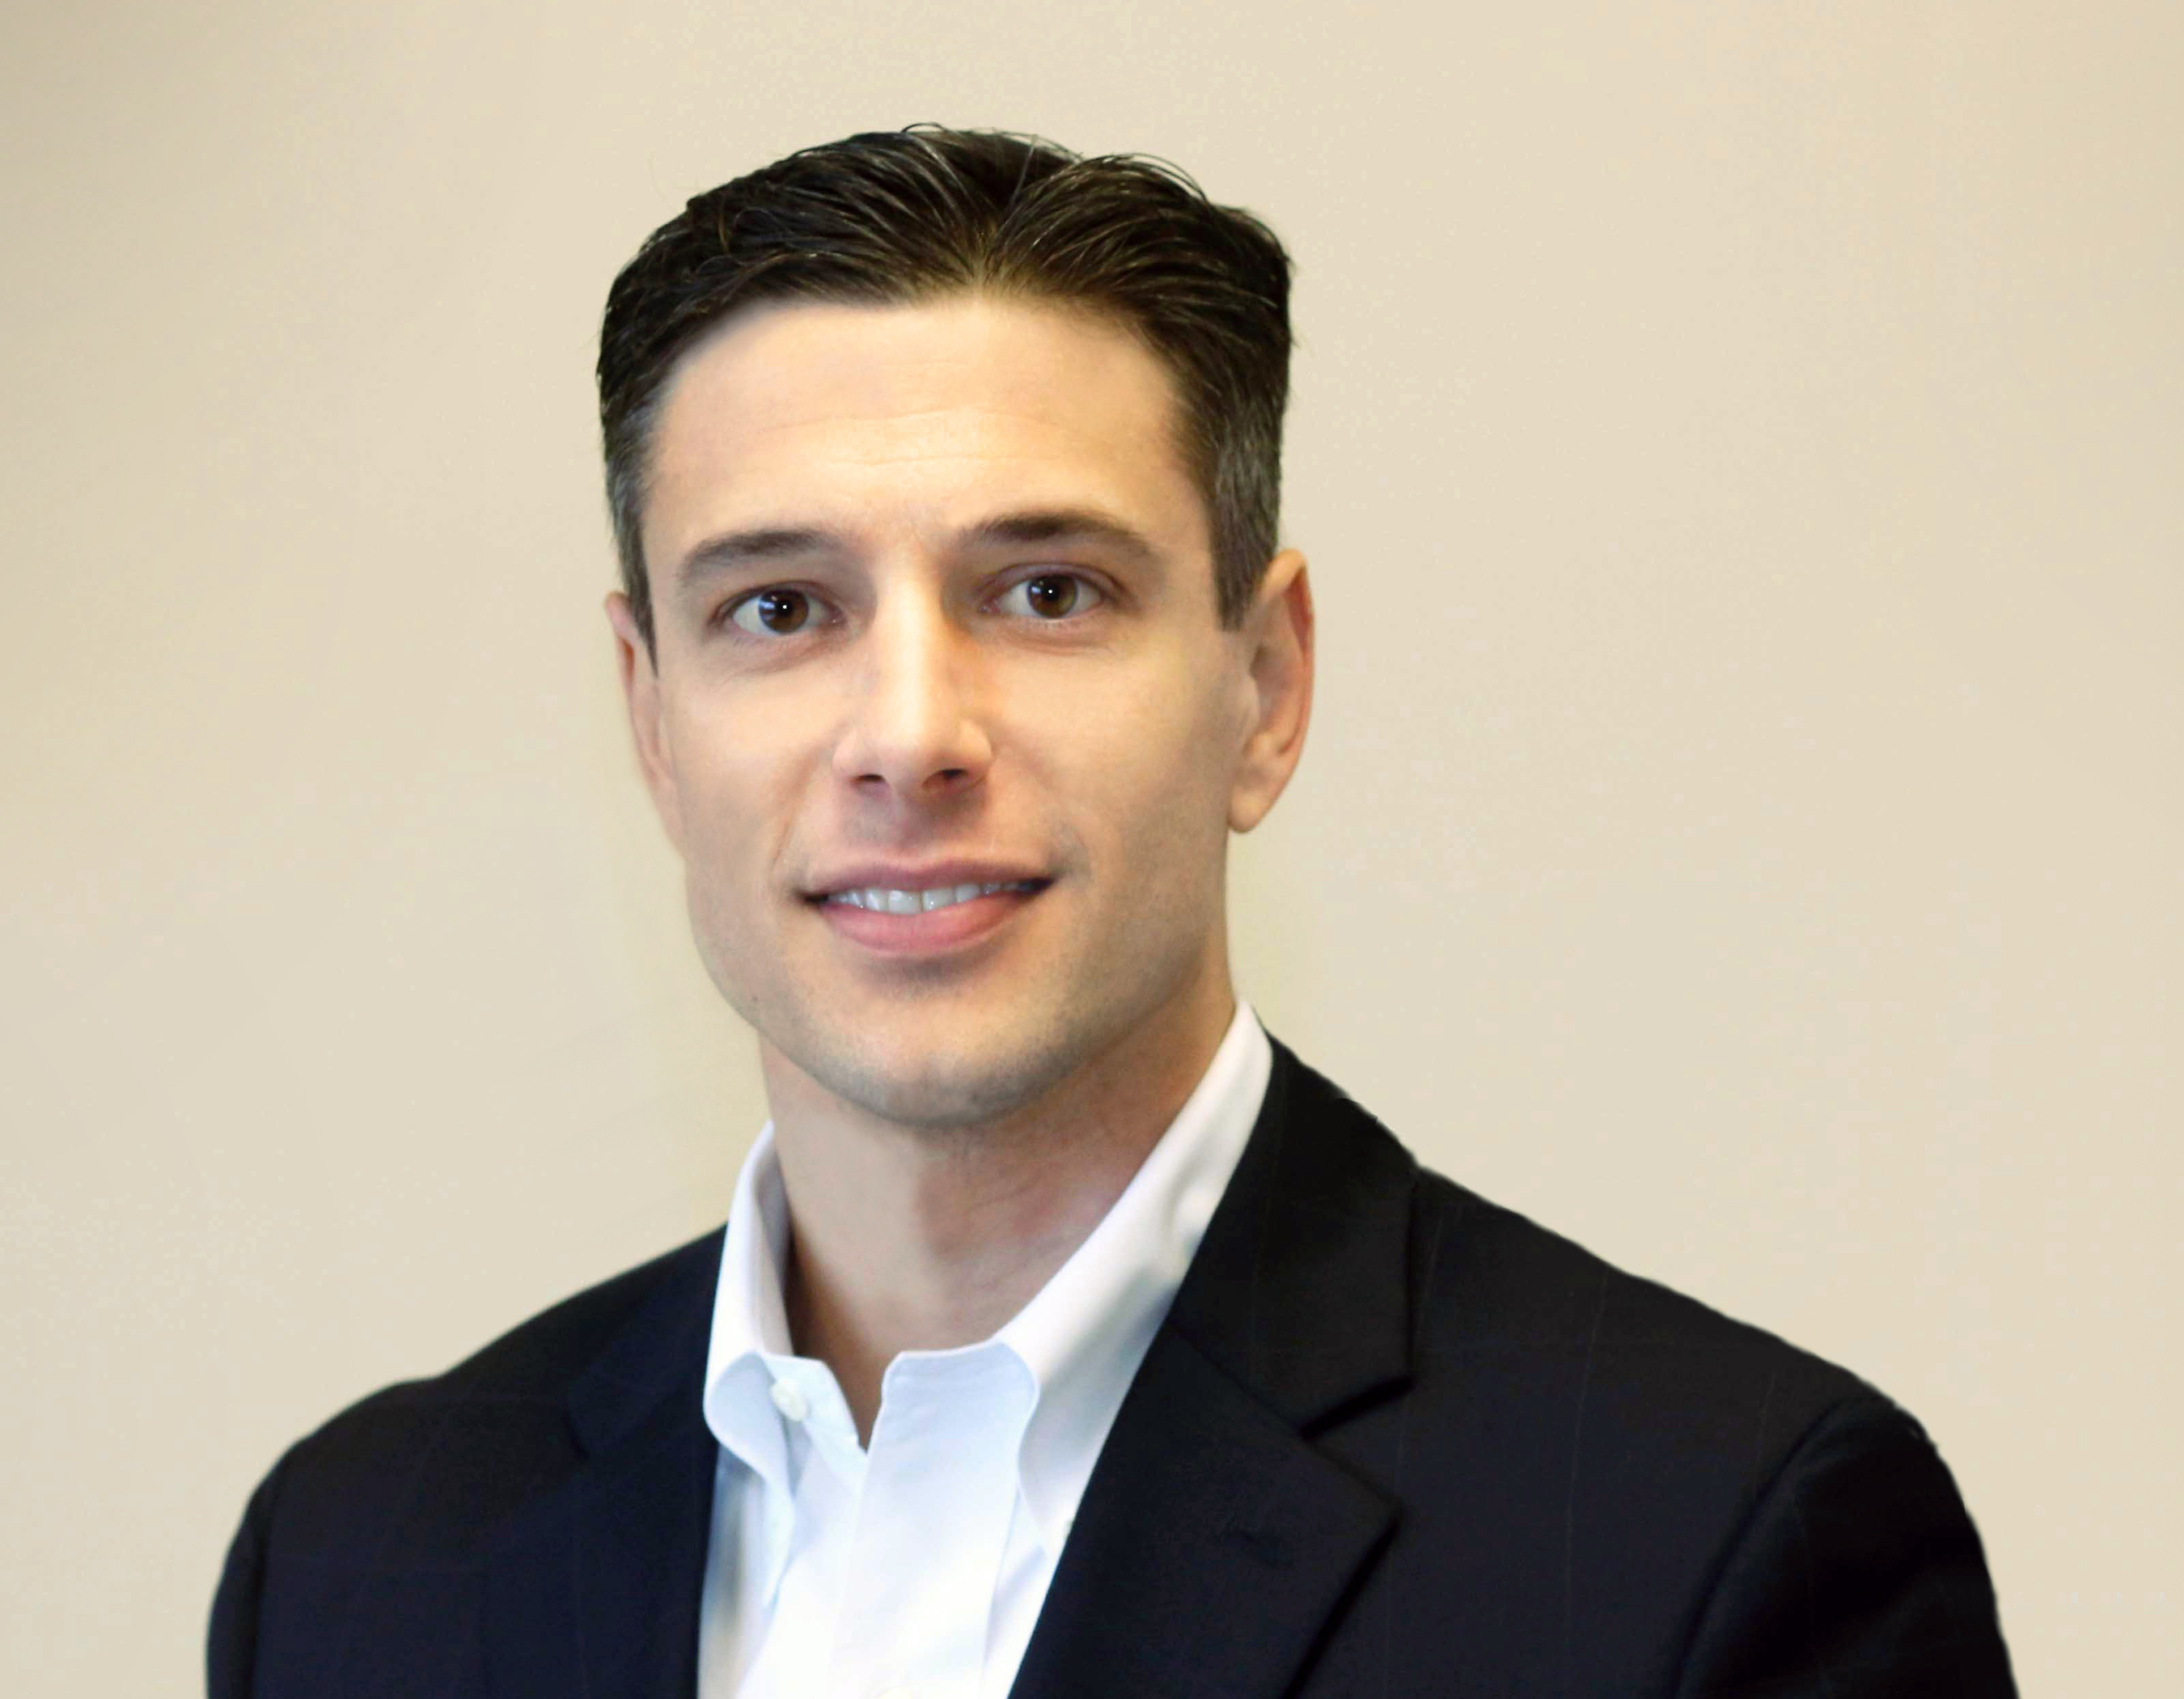 Kurt Angstadt, financial advisor Malvern PA